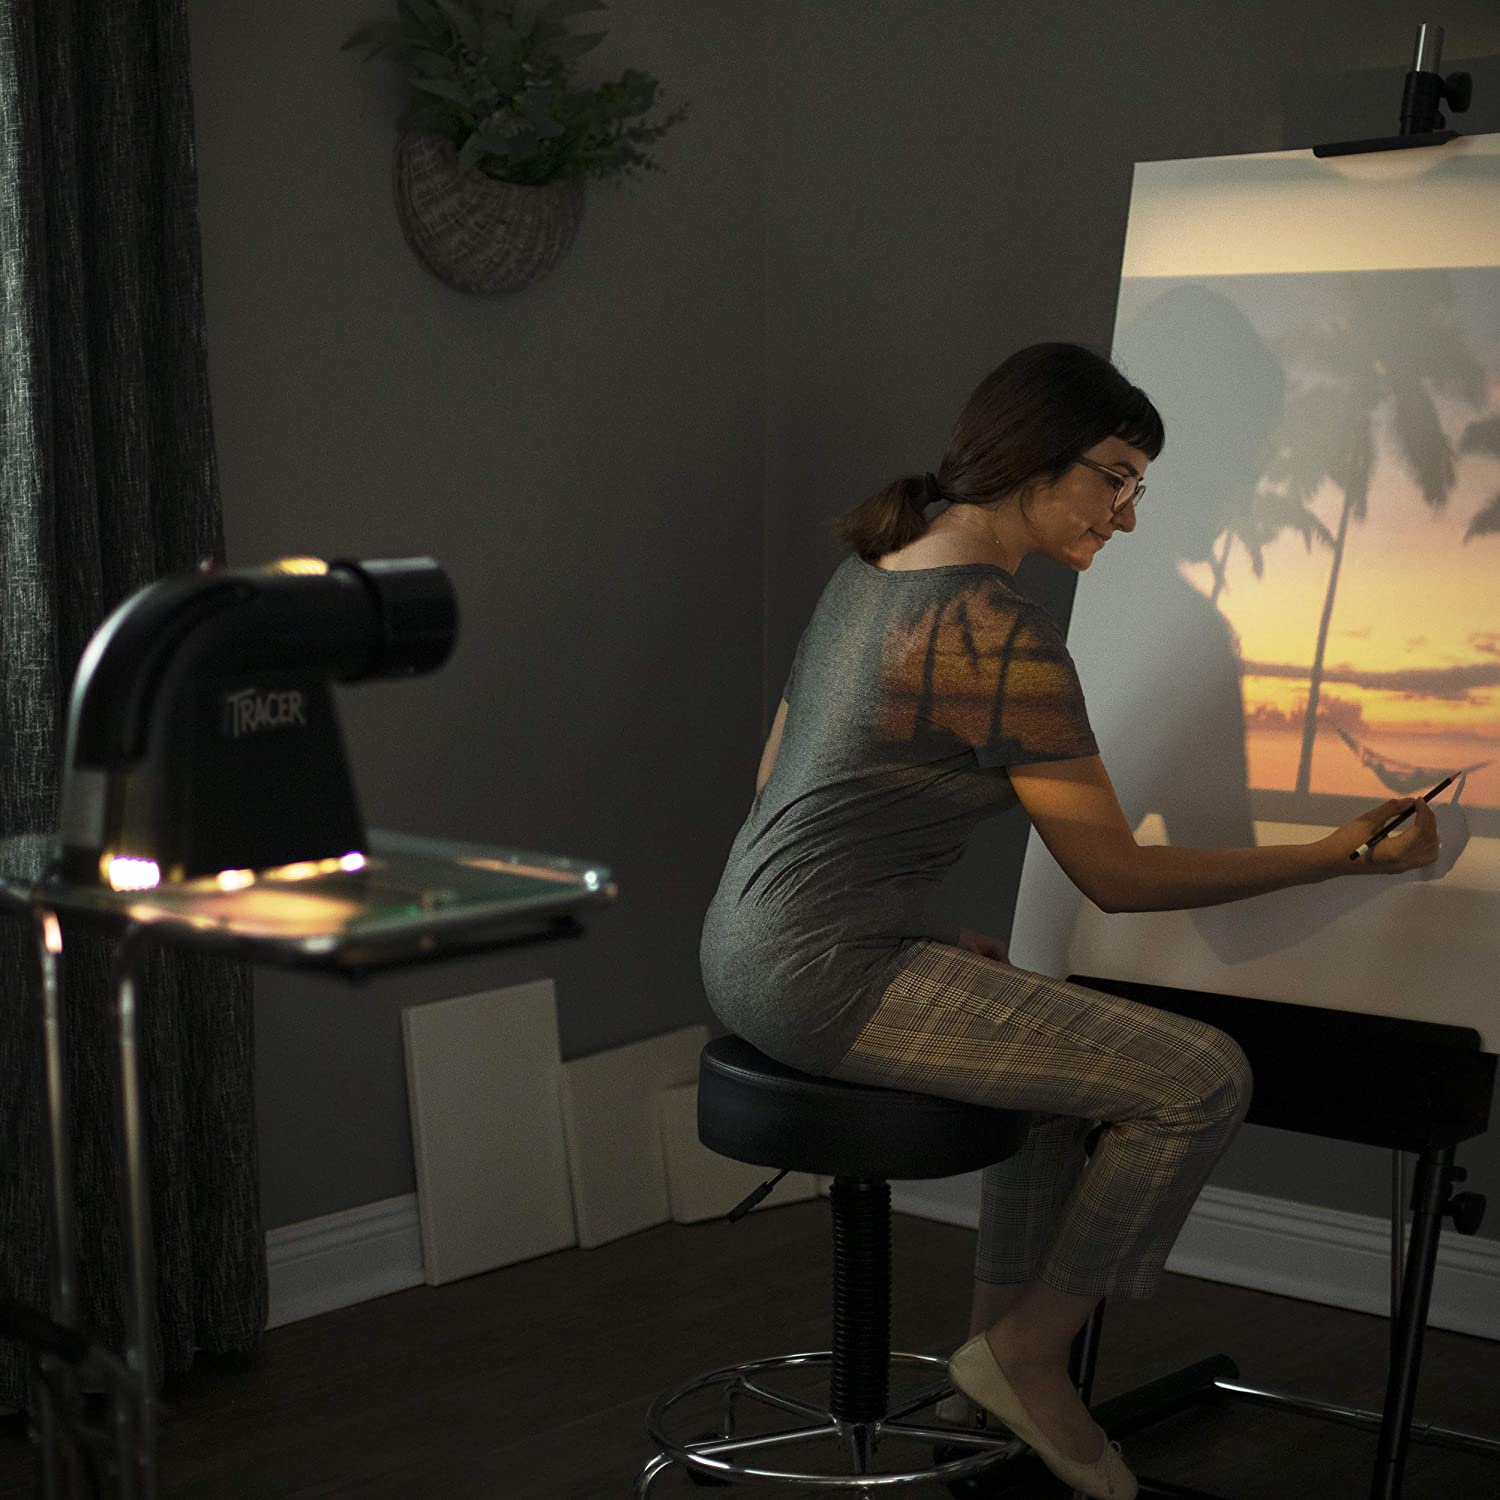 lady using Artograph Tracer